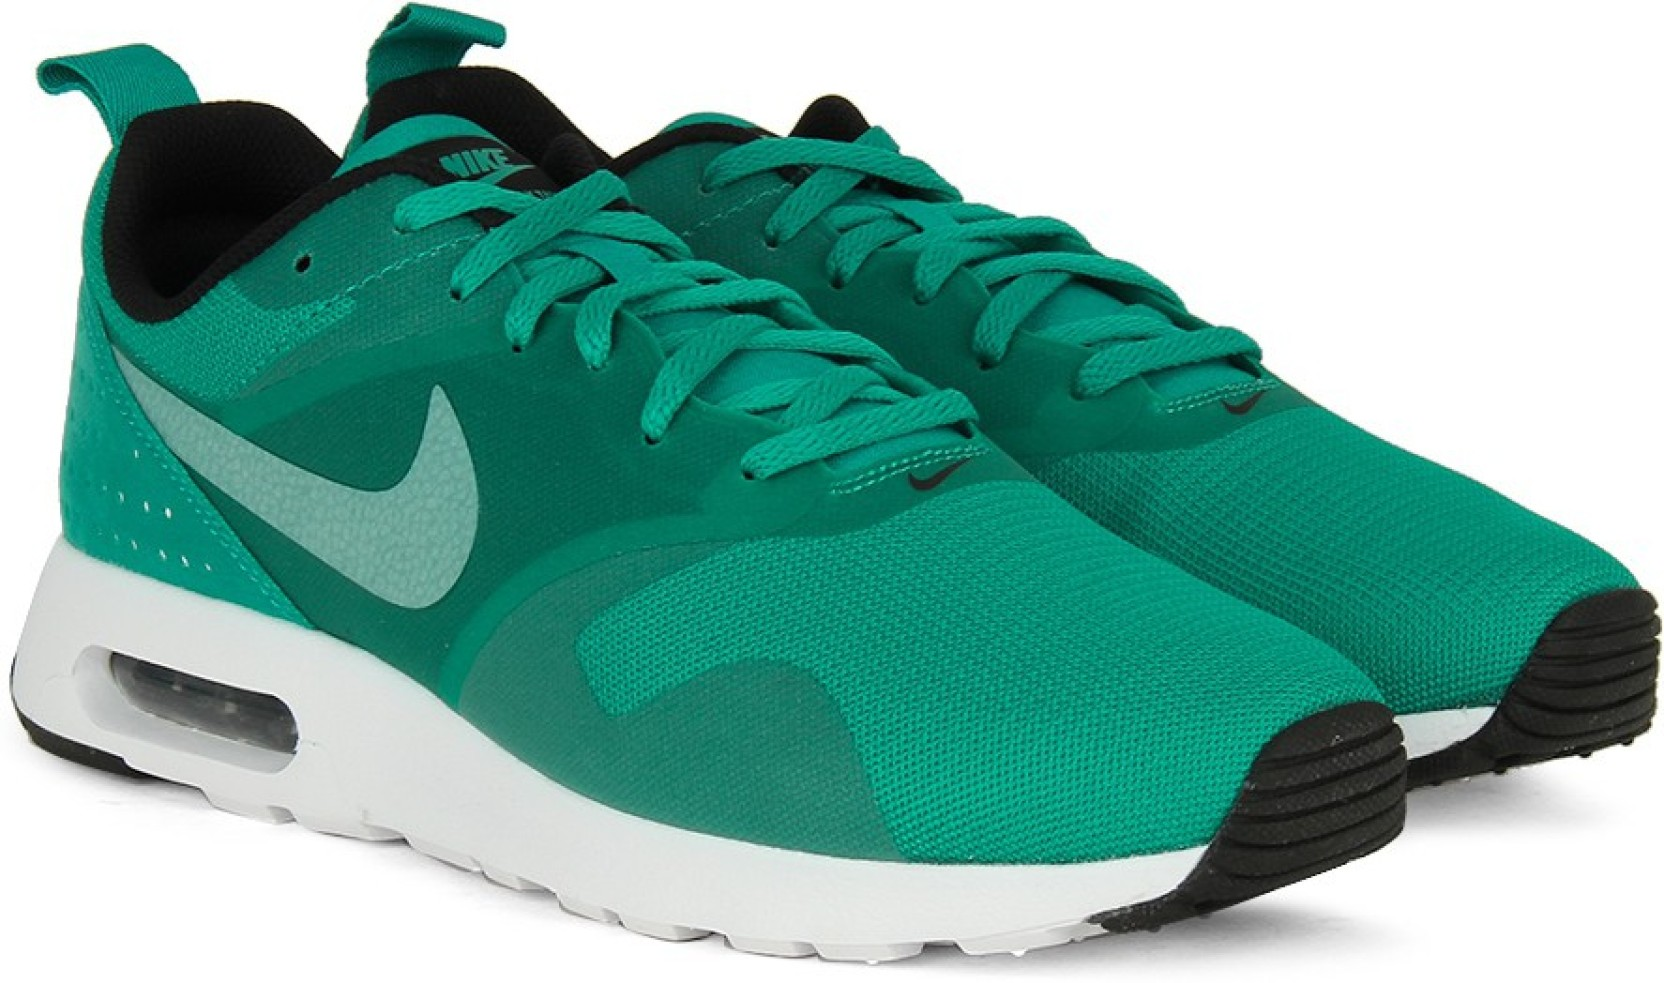 676c9bd764de1f get nike air max tavas rio teal white black white sqqahaw1 9b51d 7d07d   denmark nike air max tavas running shoes for men green a49d1 4c76b